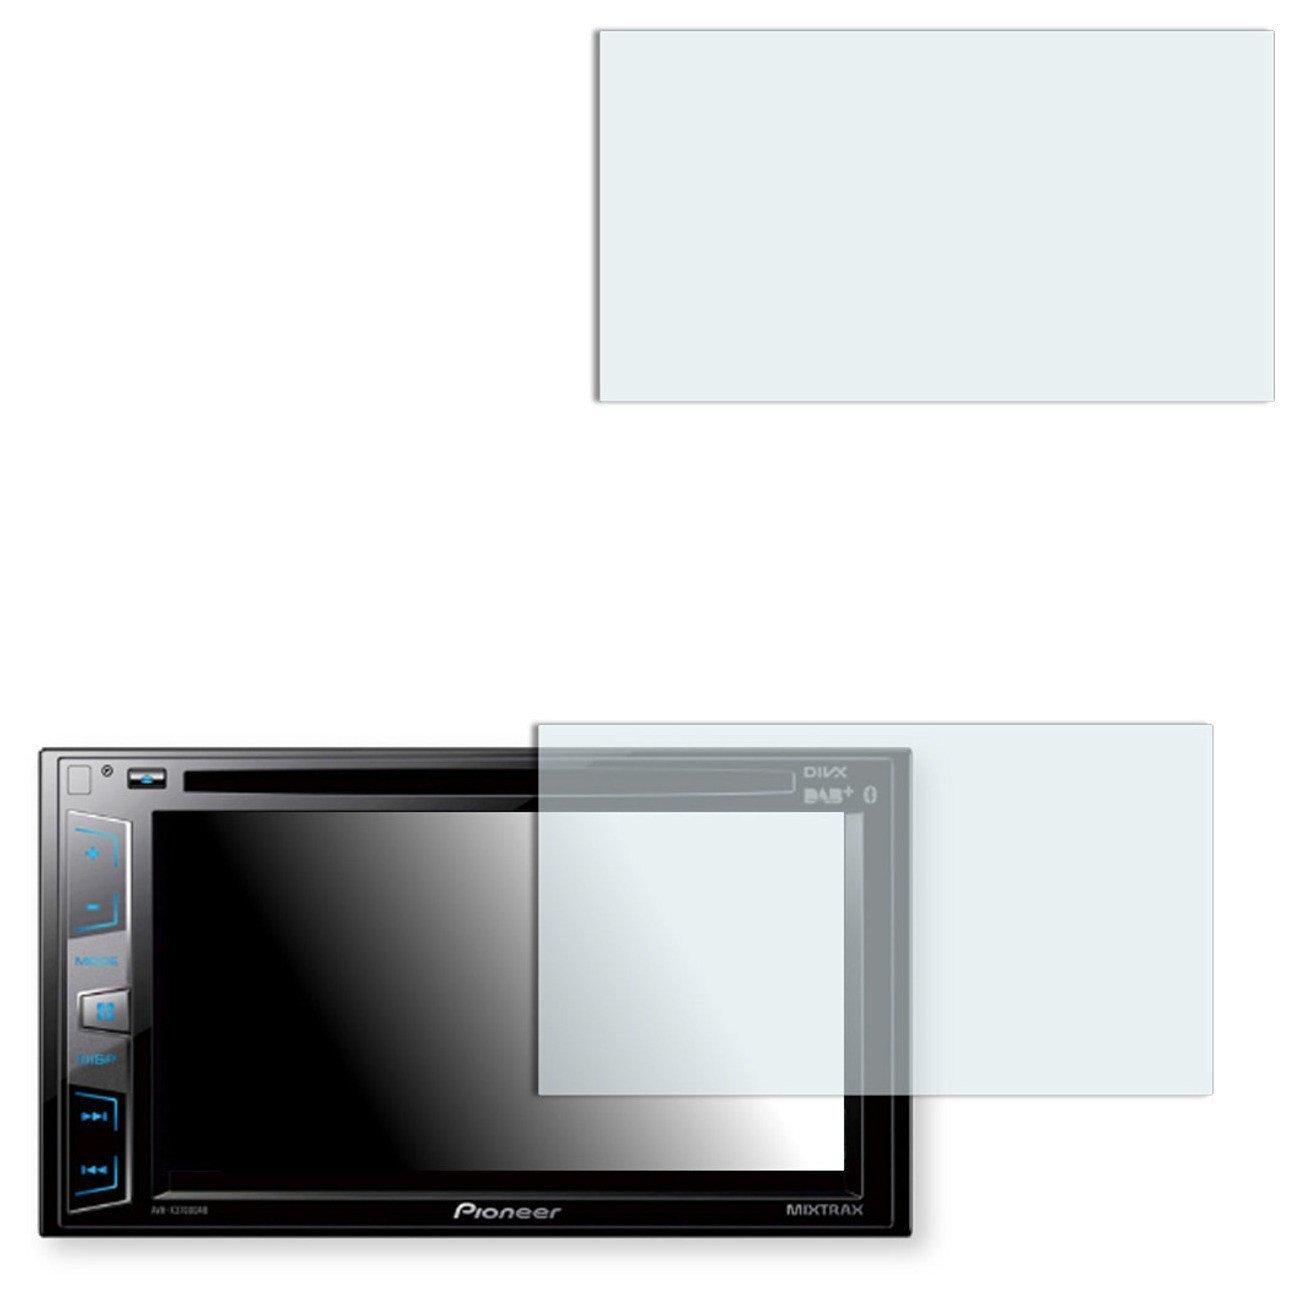 2x Golebo Anti-Glare screen protector for Pioneer AVH-X3700DAB (Anti-Reflex, Air pocket free application, Easy to remove)